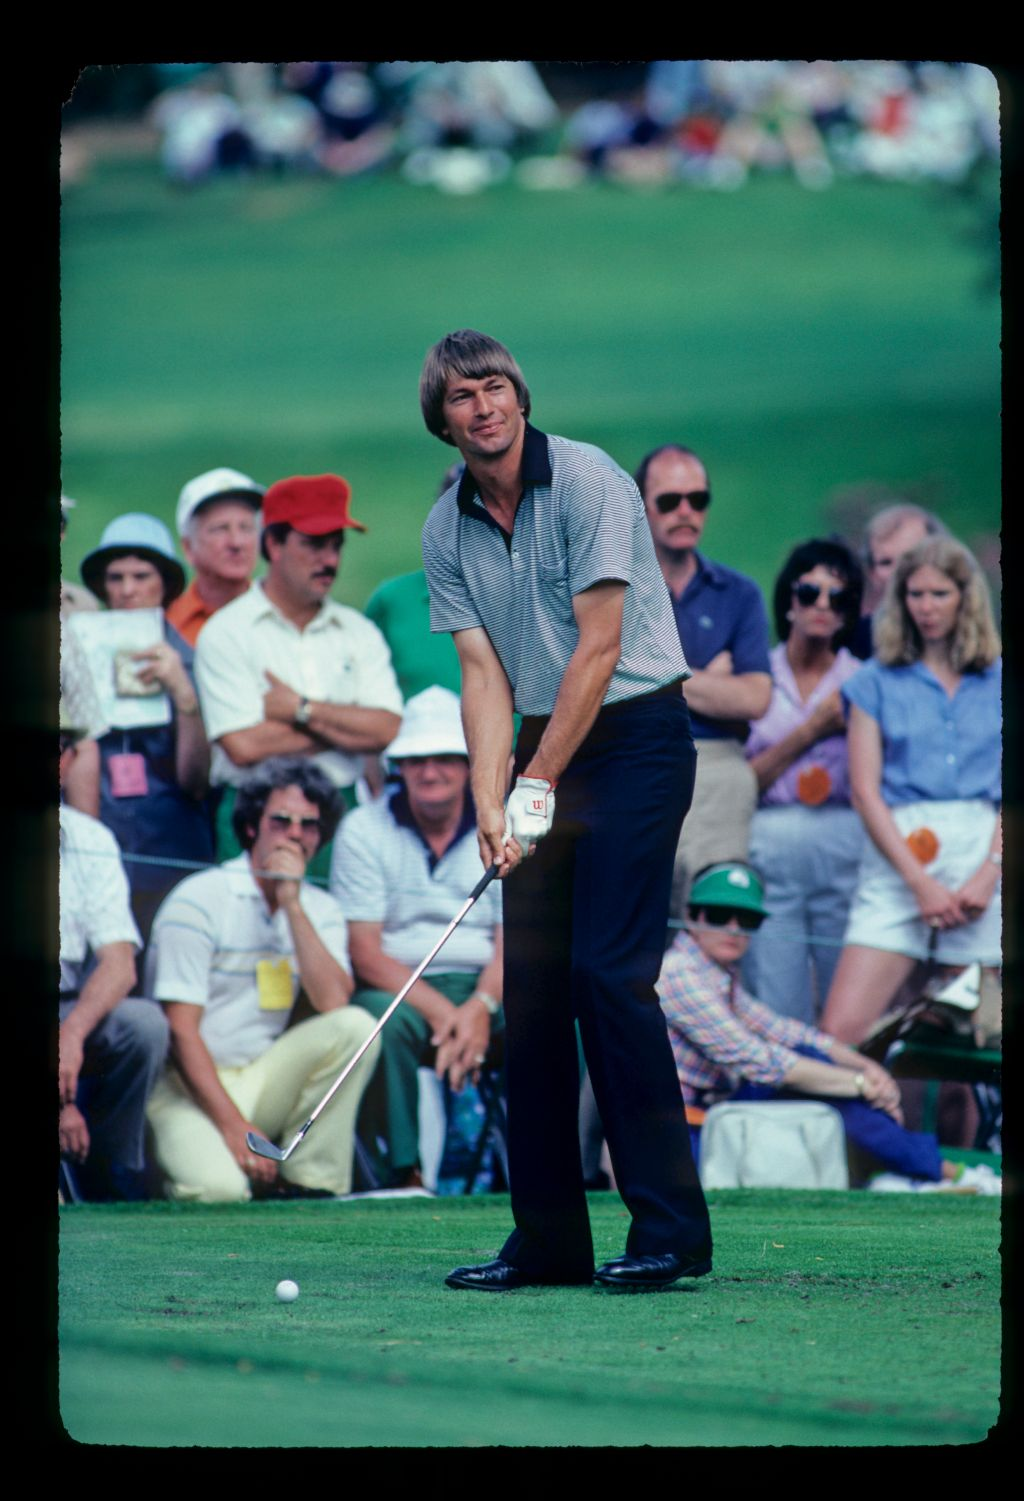 American golfer Tommy Valentine taking wedge off the tee at the 1981 Masters Par Three tournament